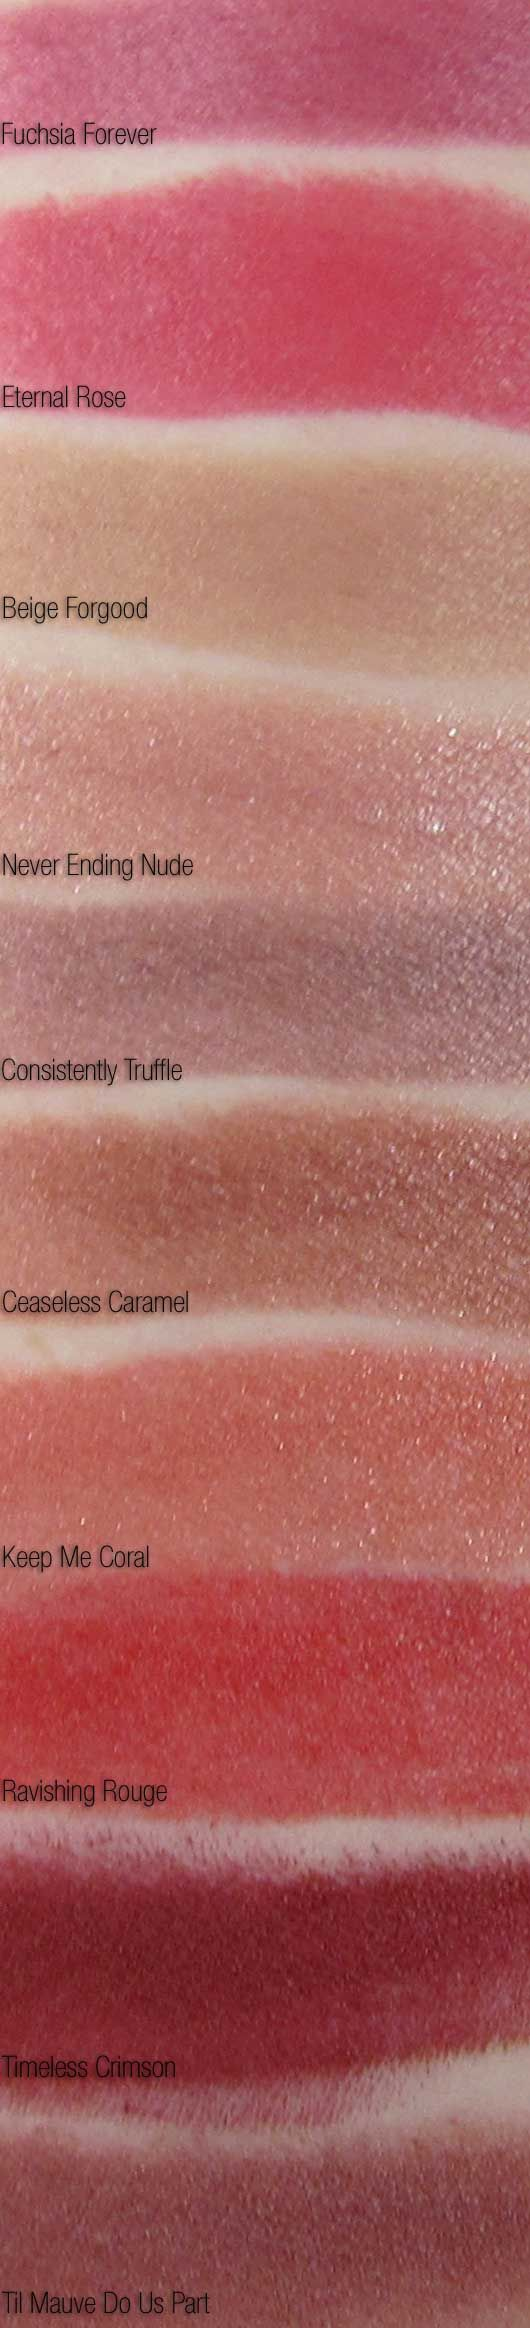 Review & Swatches: Maybelline SuperStay 14HR Lipstick | Beauty Junkies Unite. I use this and it really lasts. Want to try more colors!